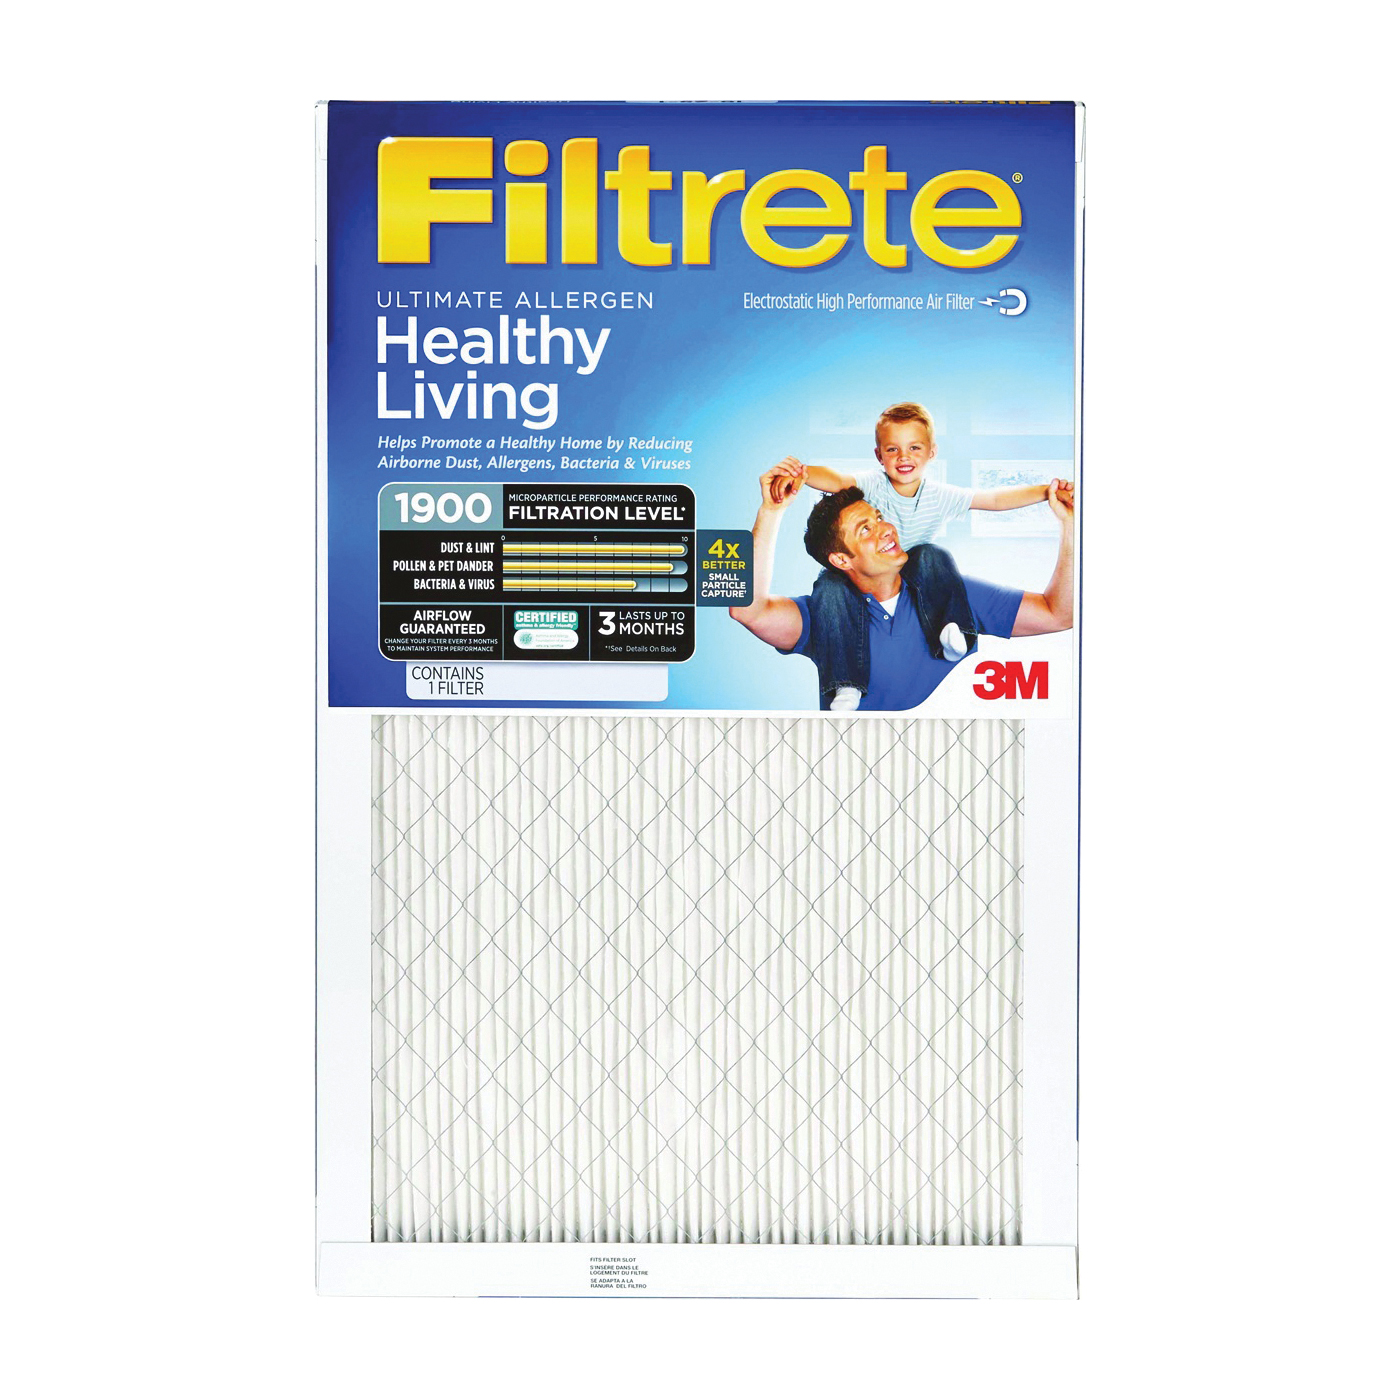 Picture of Filtrete UA05DC-6 Air Filter, 20 in L, 14 in W, 12 MERV, 93 % Filter Efficiency, Microfiber Filter Media